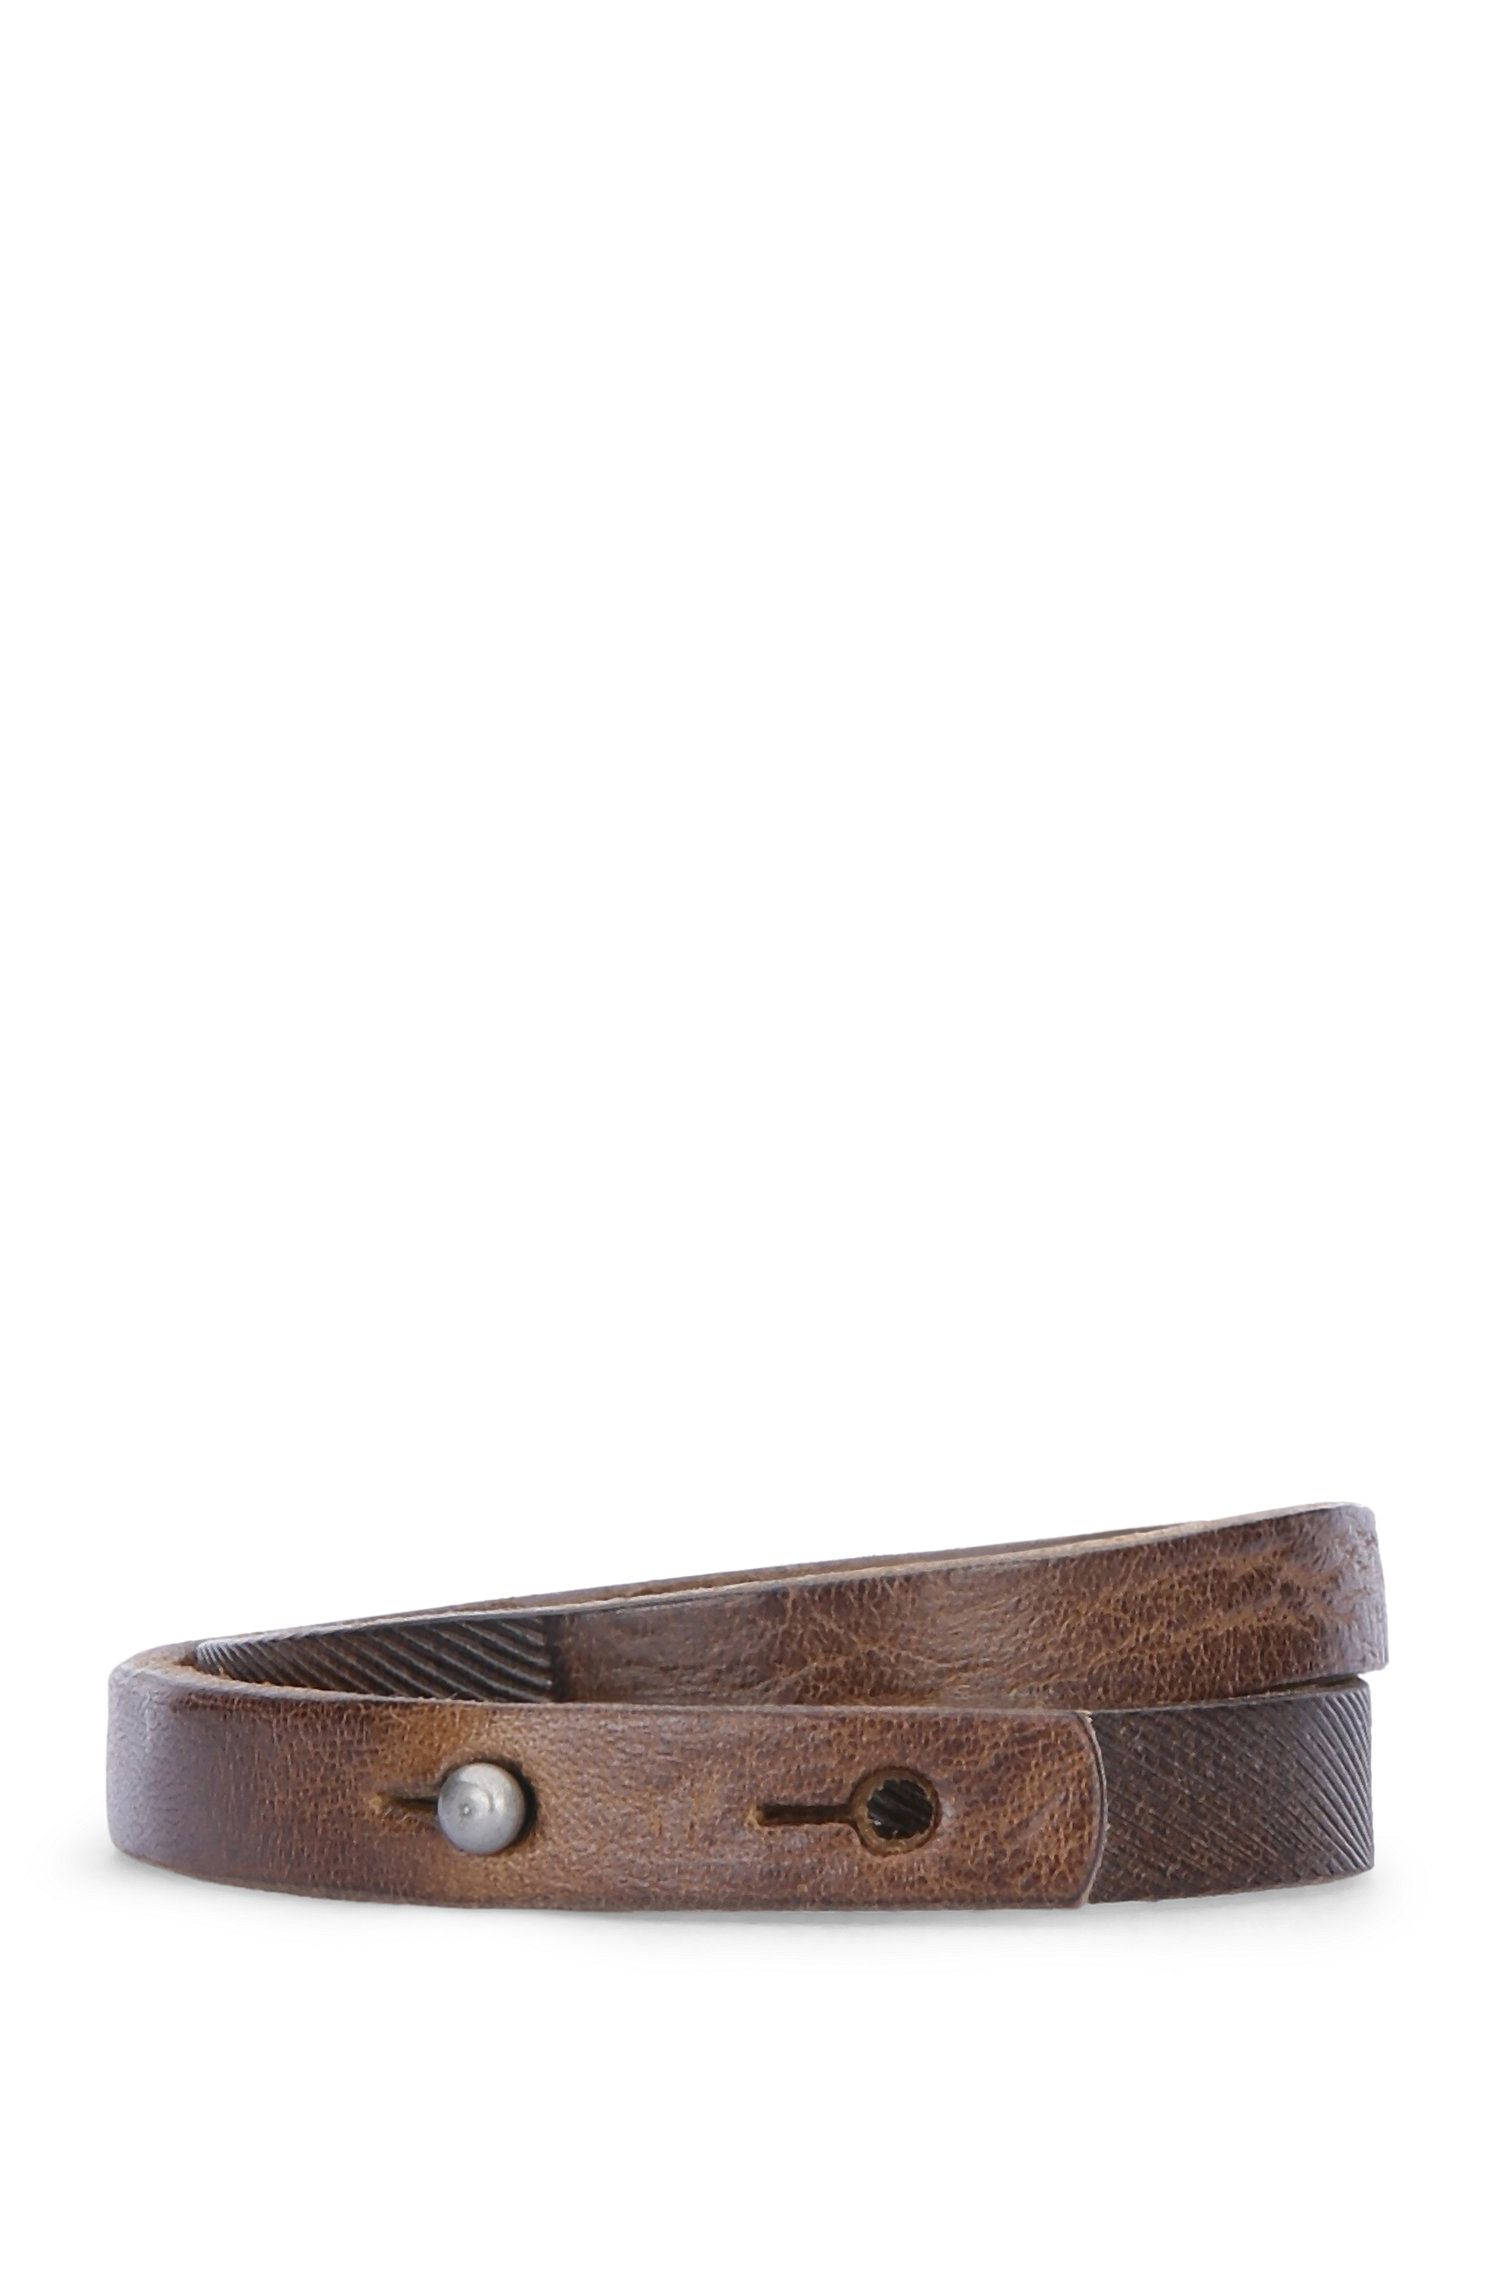 'Morrison' | Leather Etched Wrap Bracelet